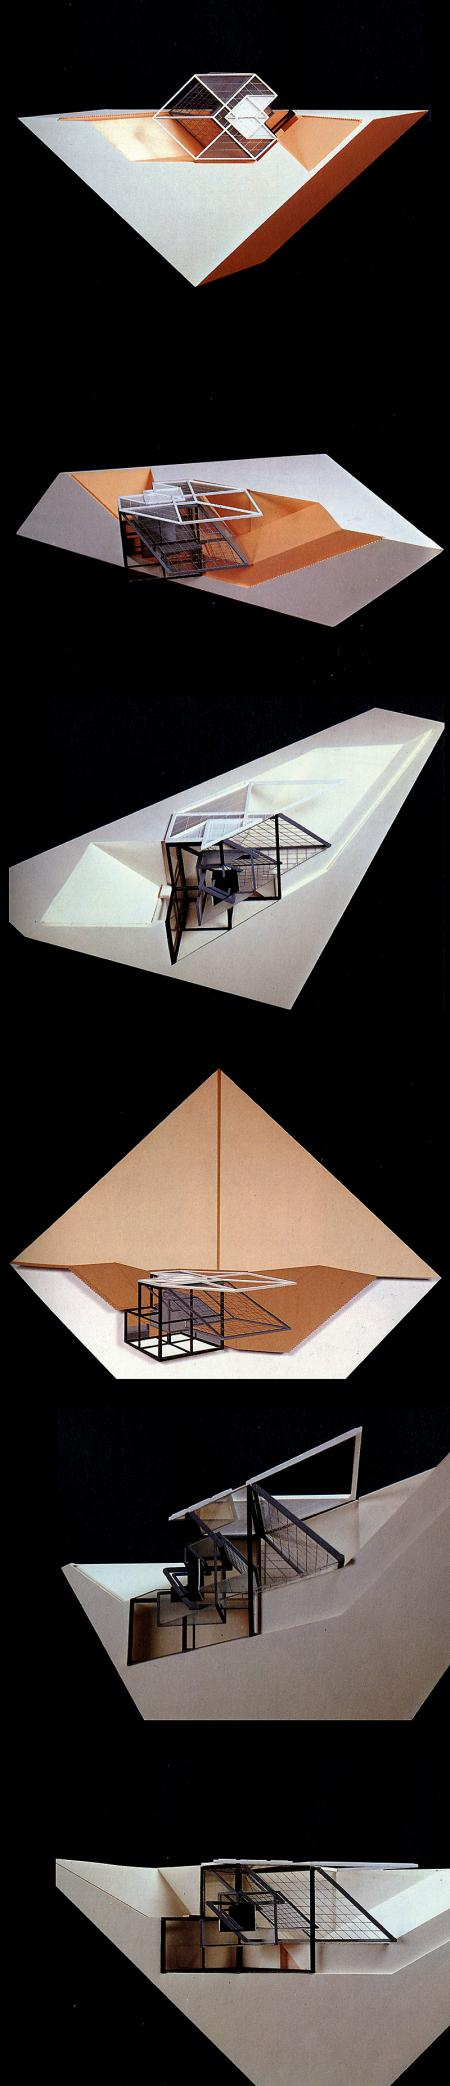 Peter Eisenman. GA Document. 3 1981, 90